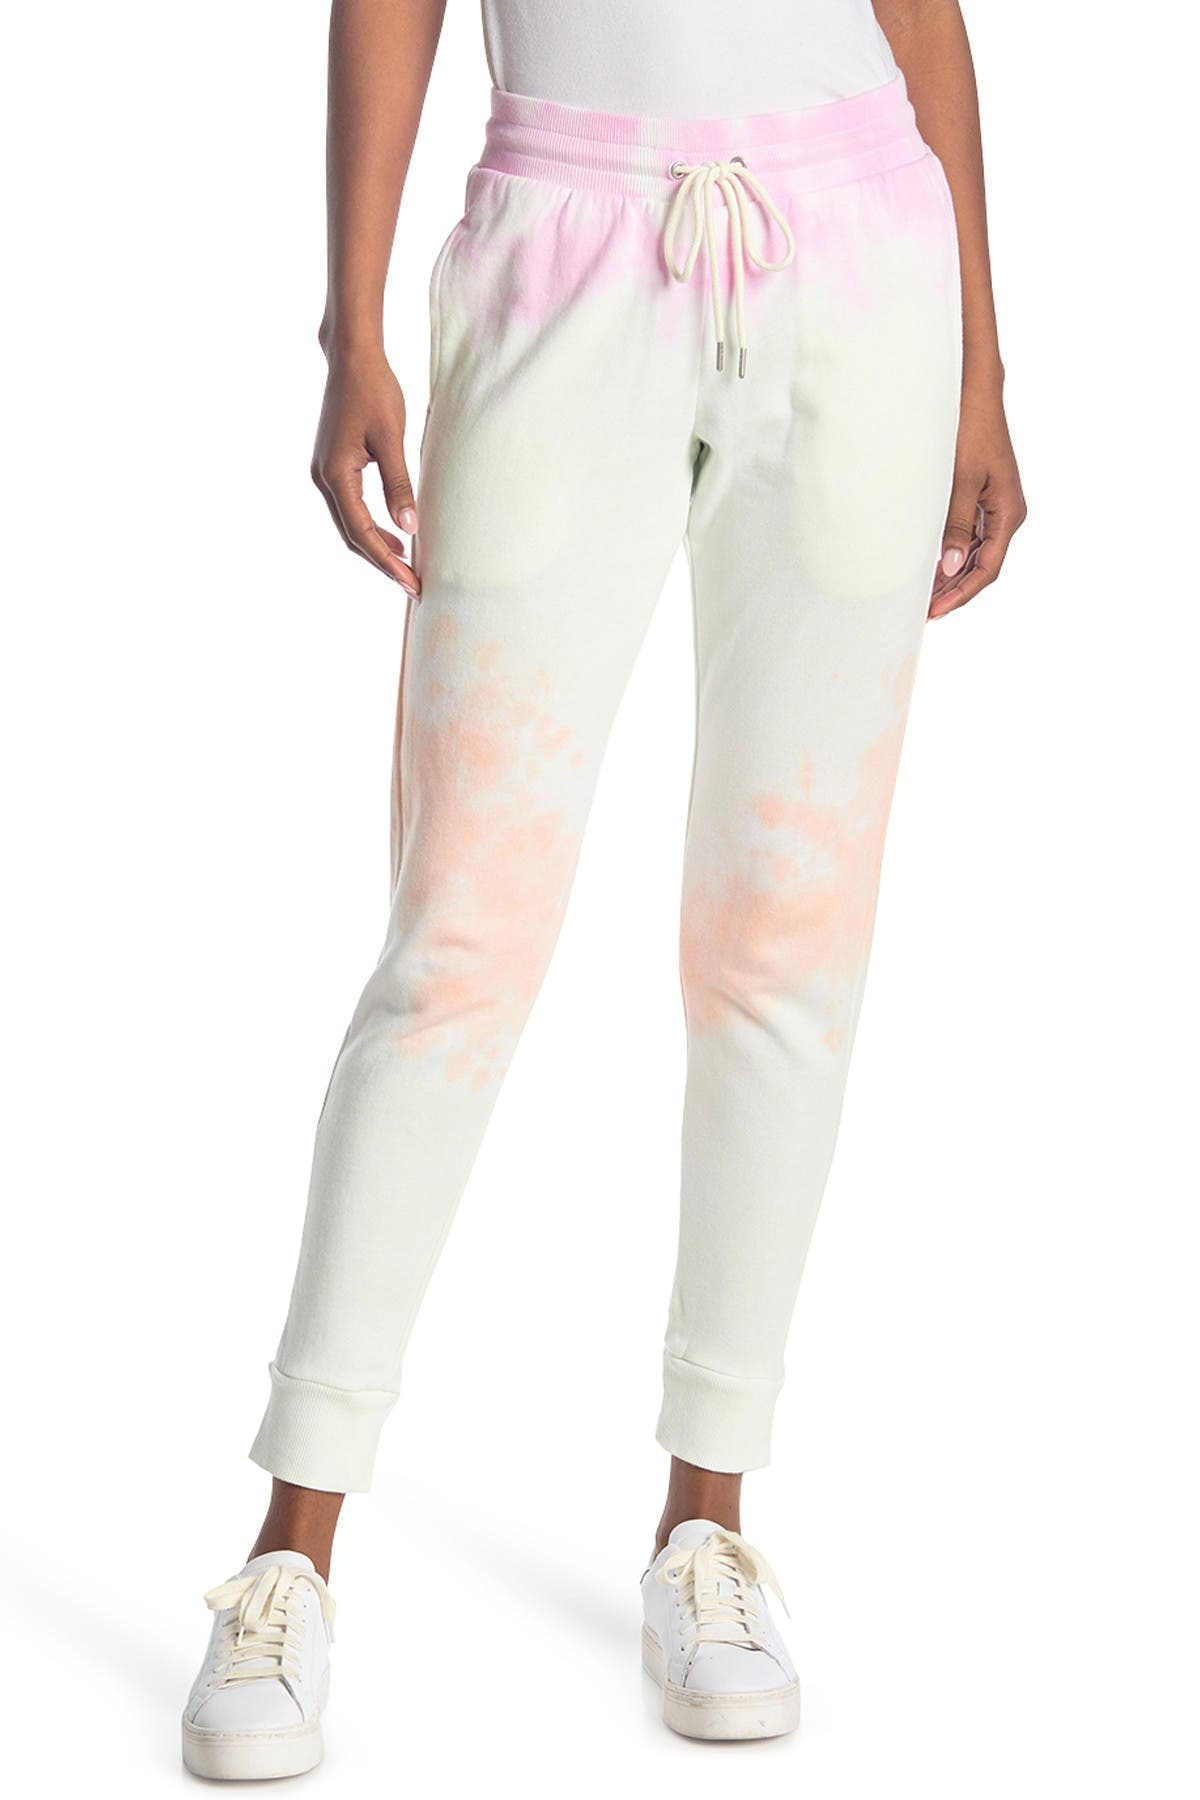 Image of 90 Degree By Reflex Brushed Tie Dye Joggers